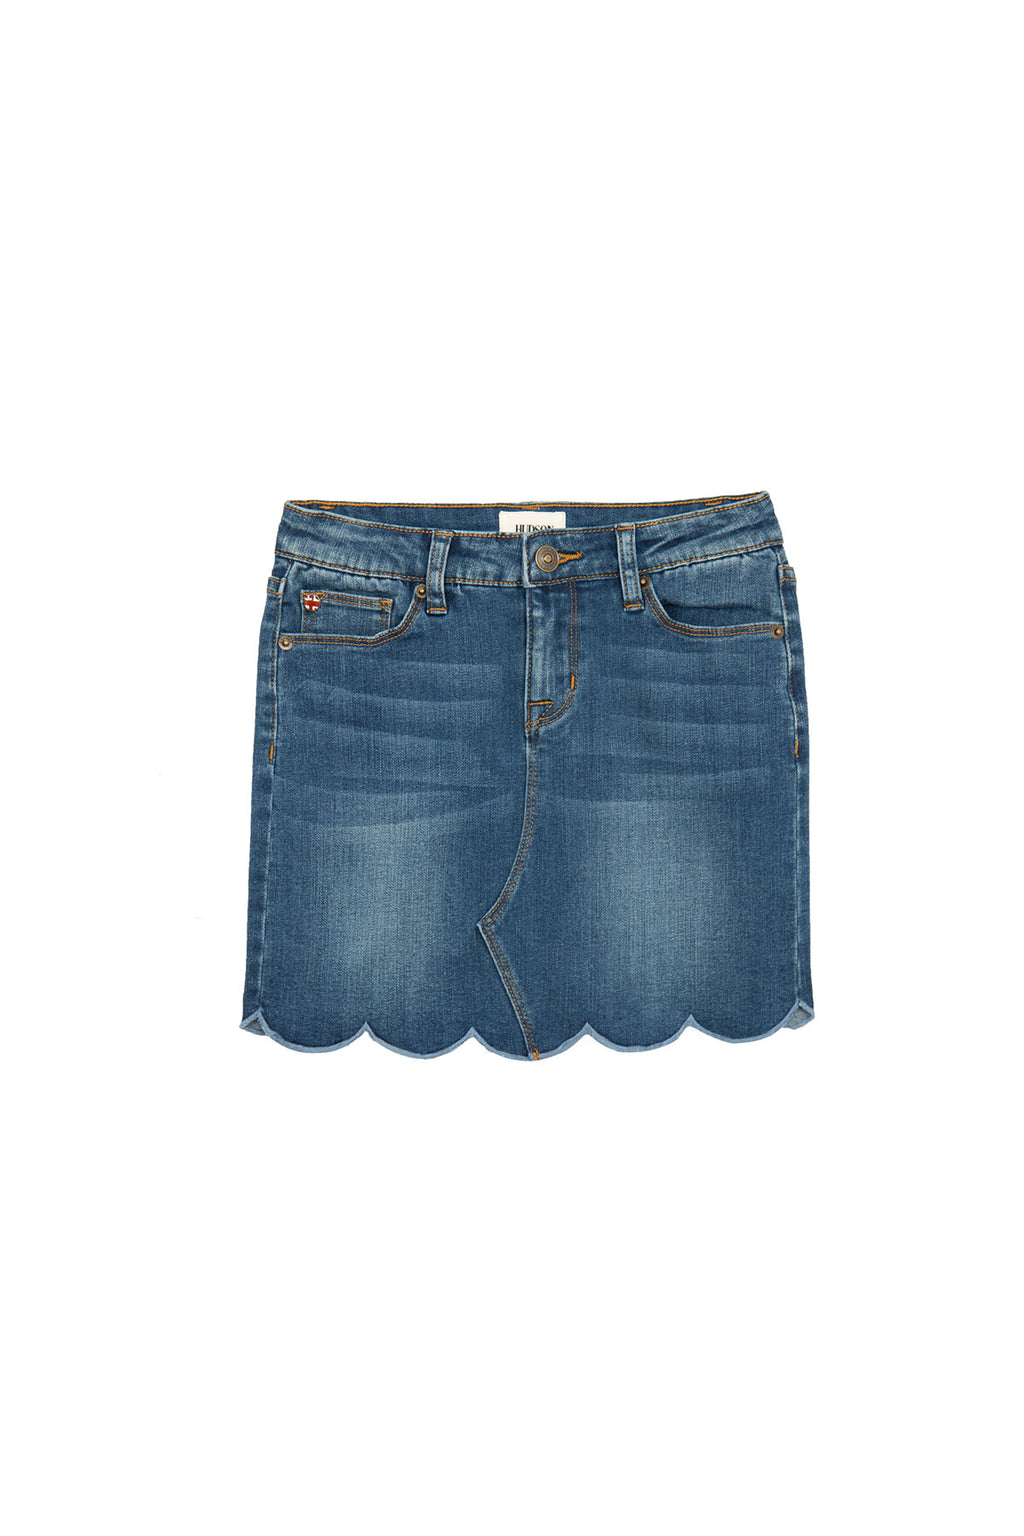 65609f6abf Girls Denim Skirt Size 7